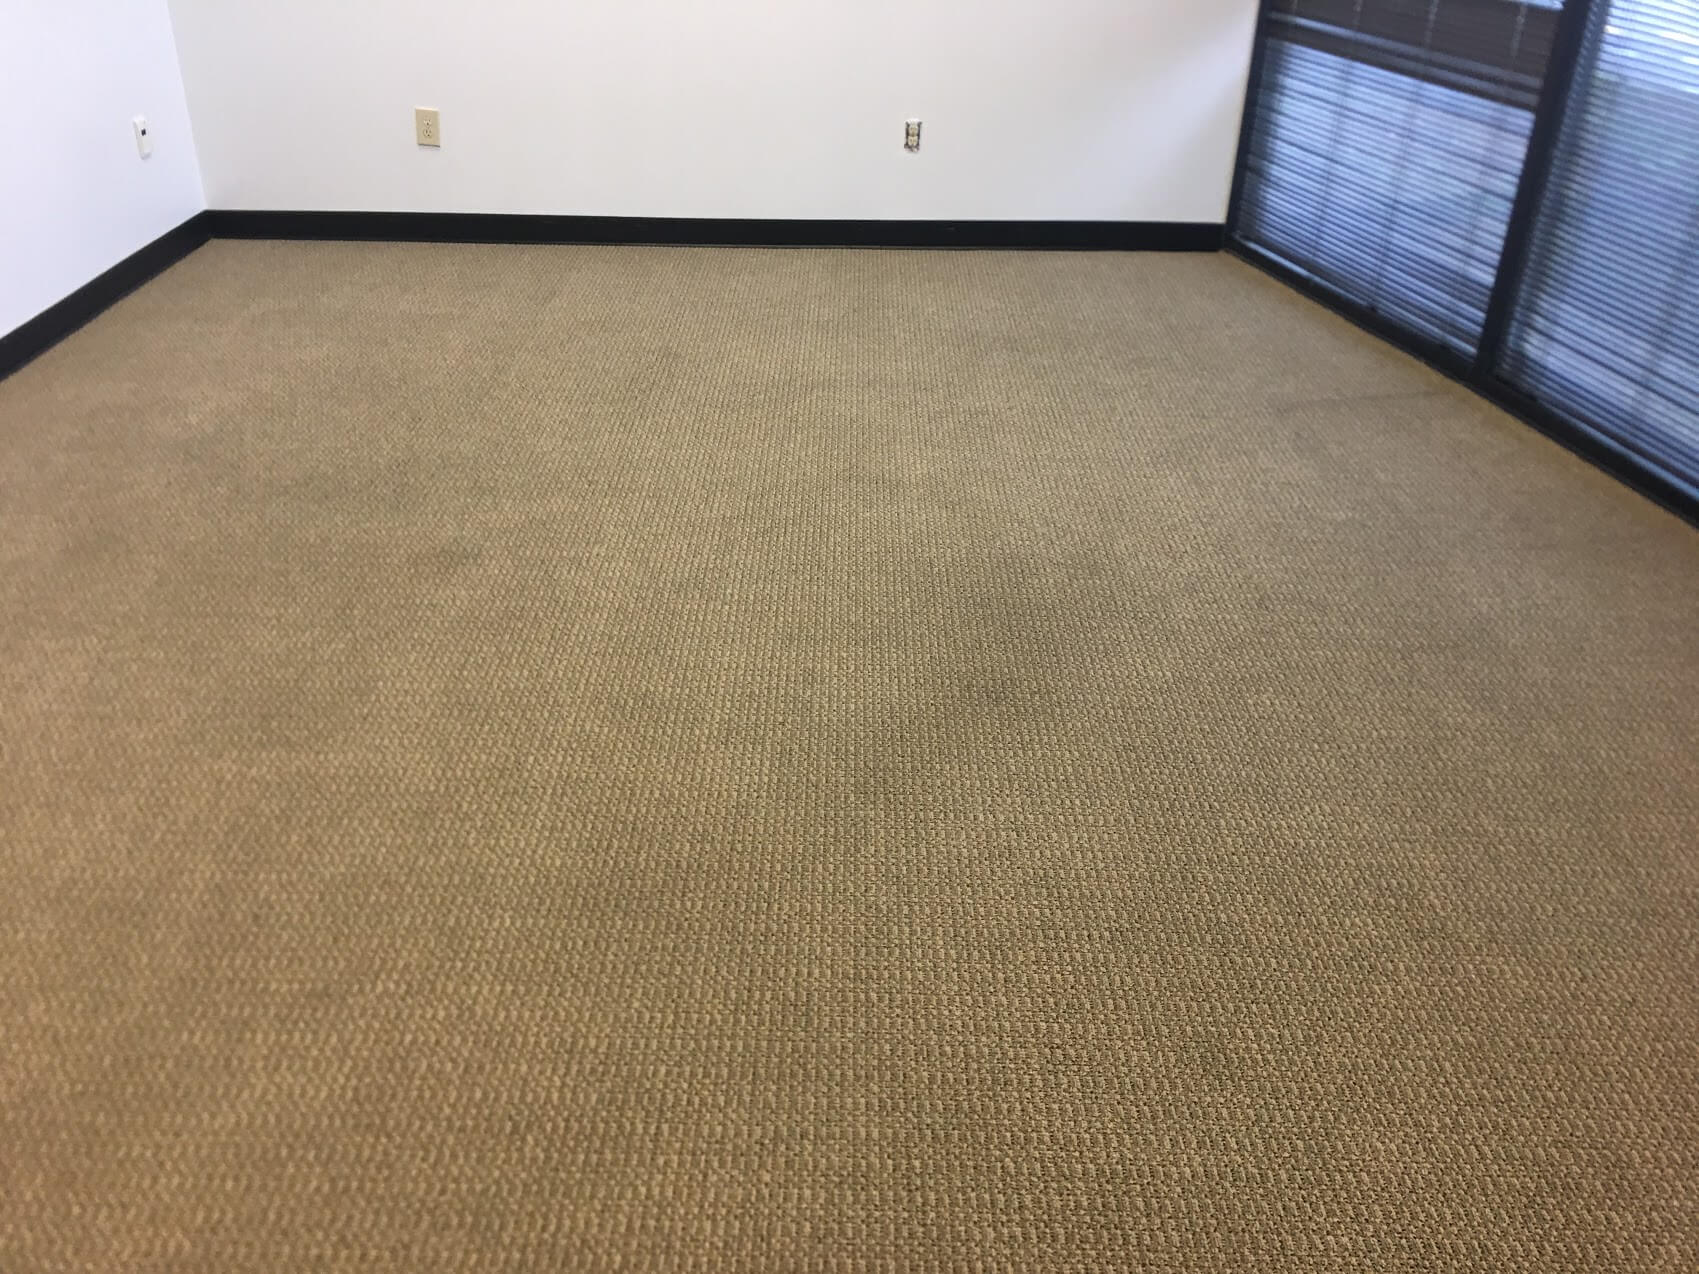 Brown office carpets cleaned by K&C Chem-Dry